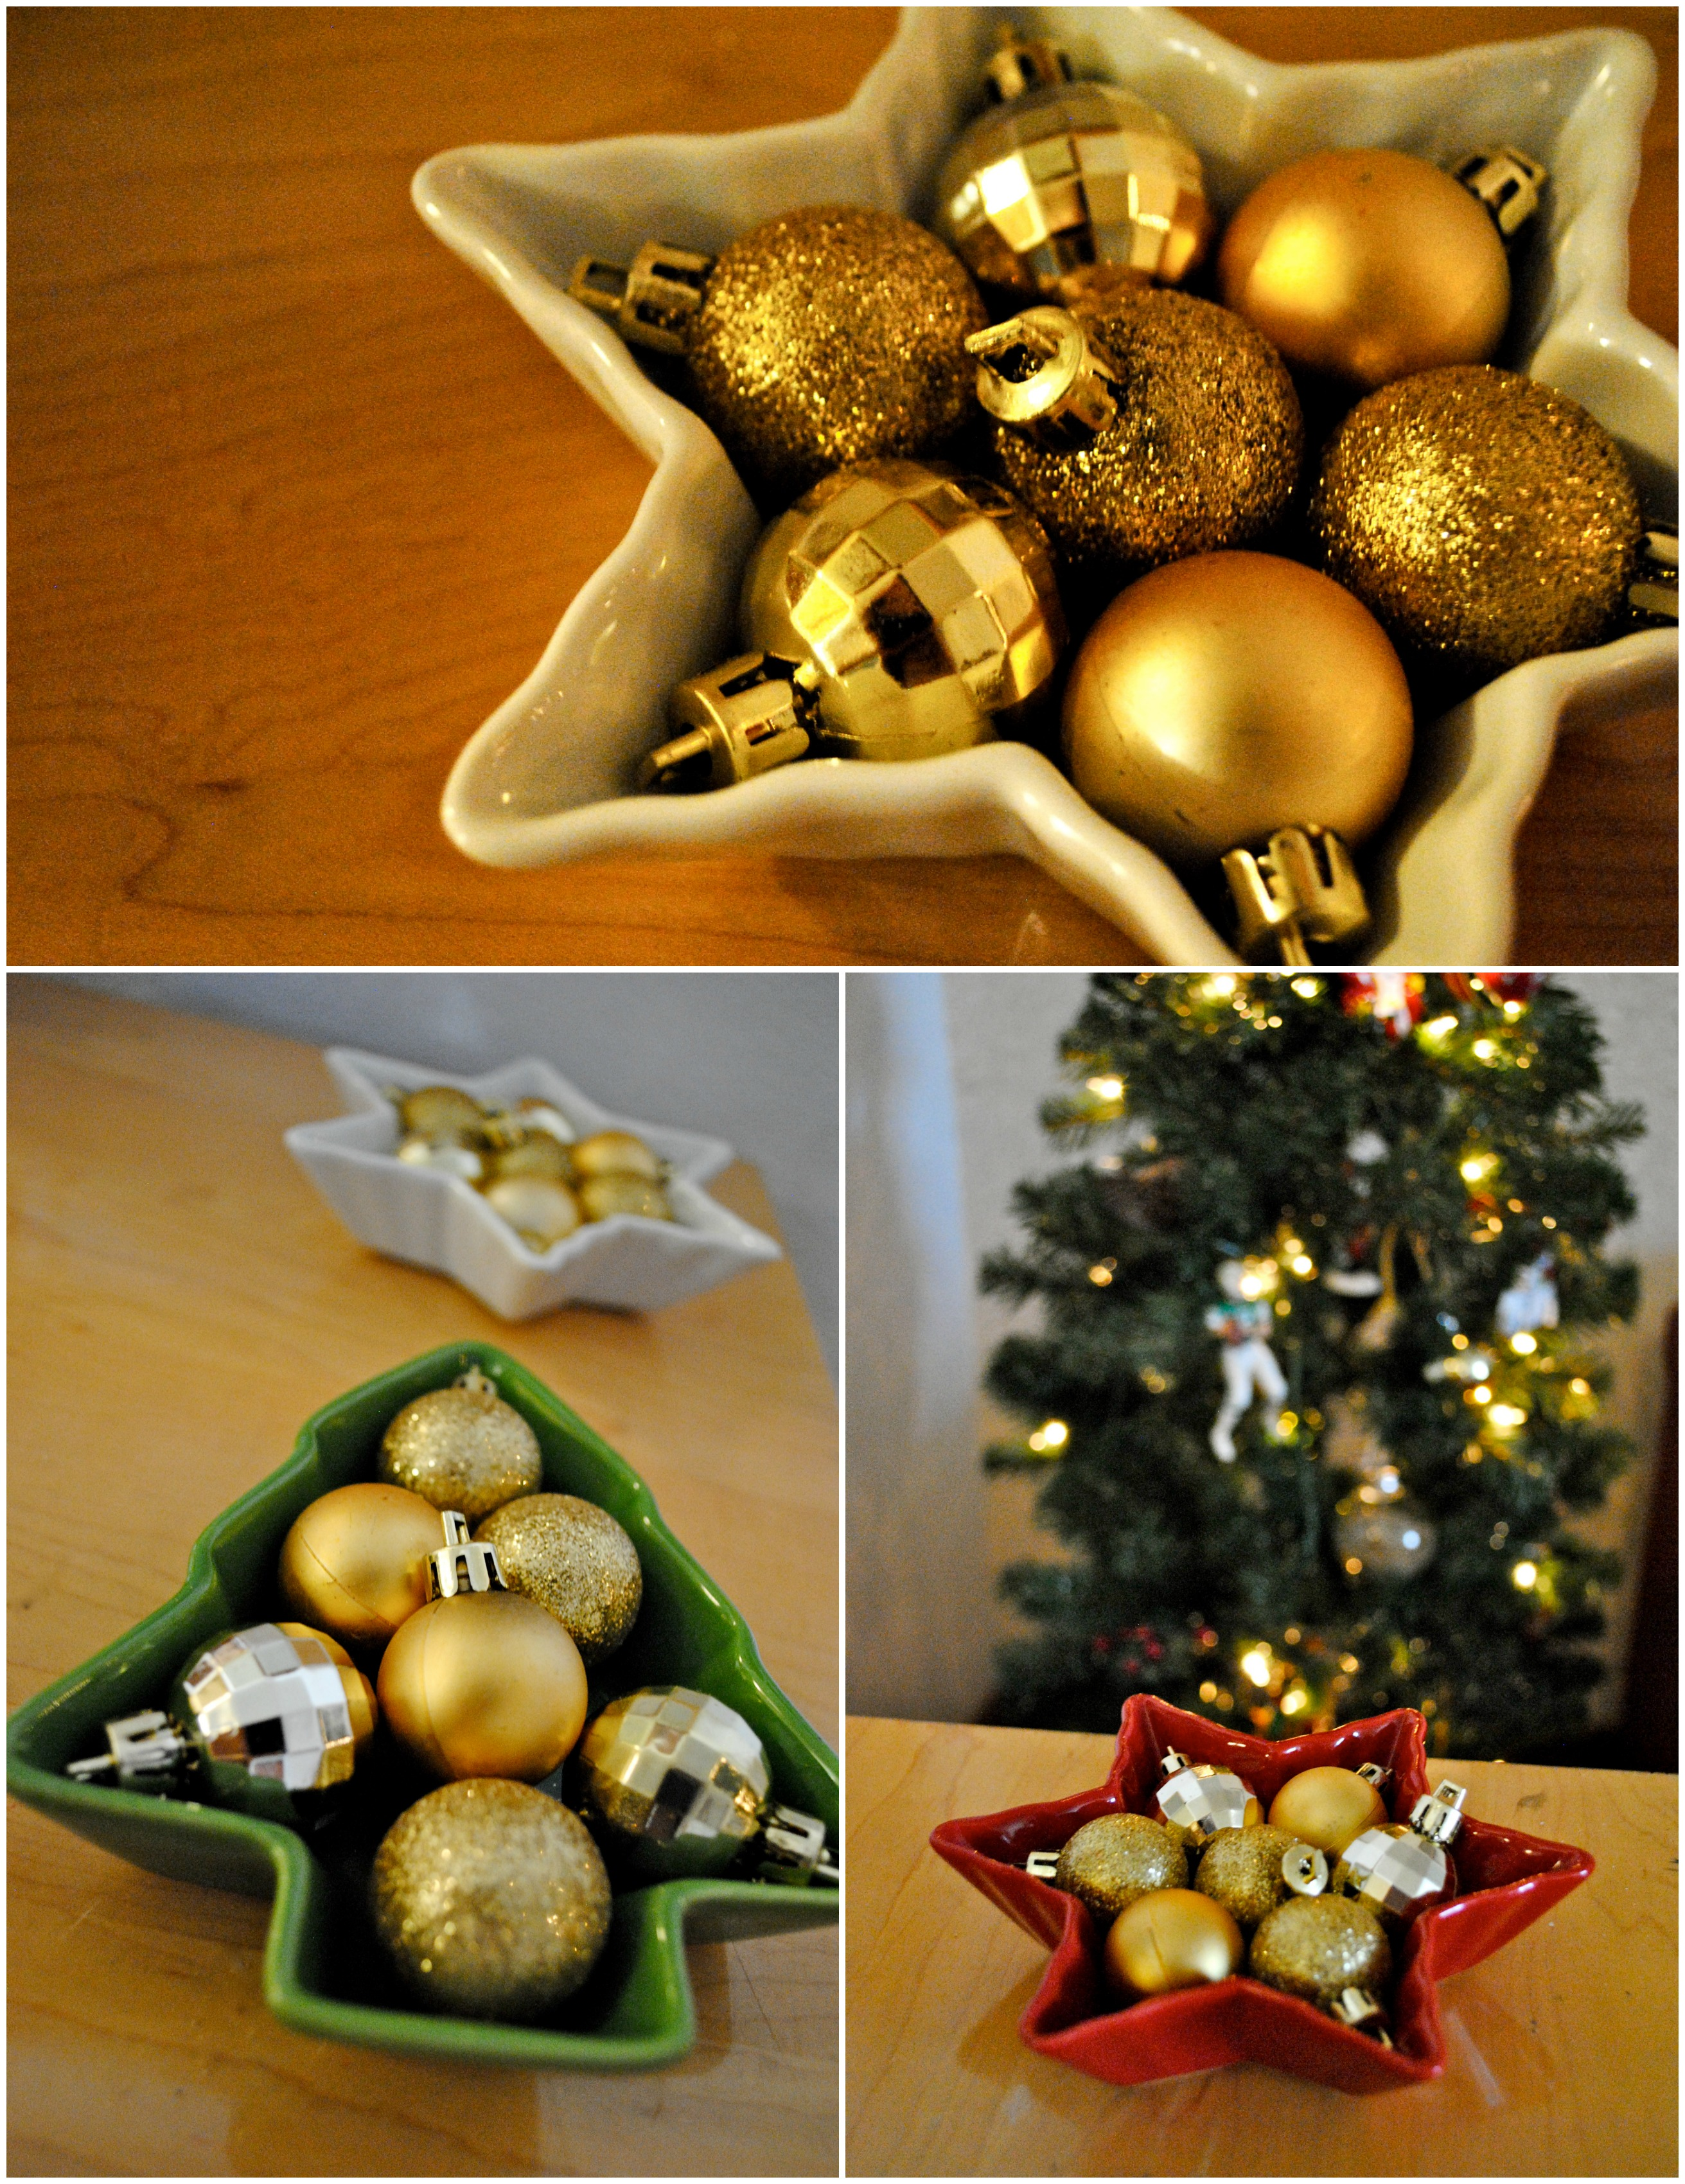 Ornament dishes